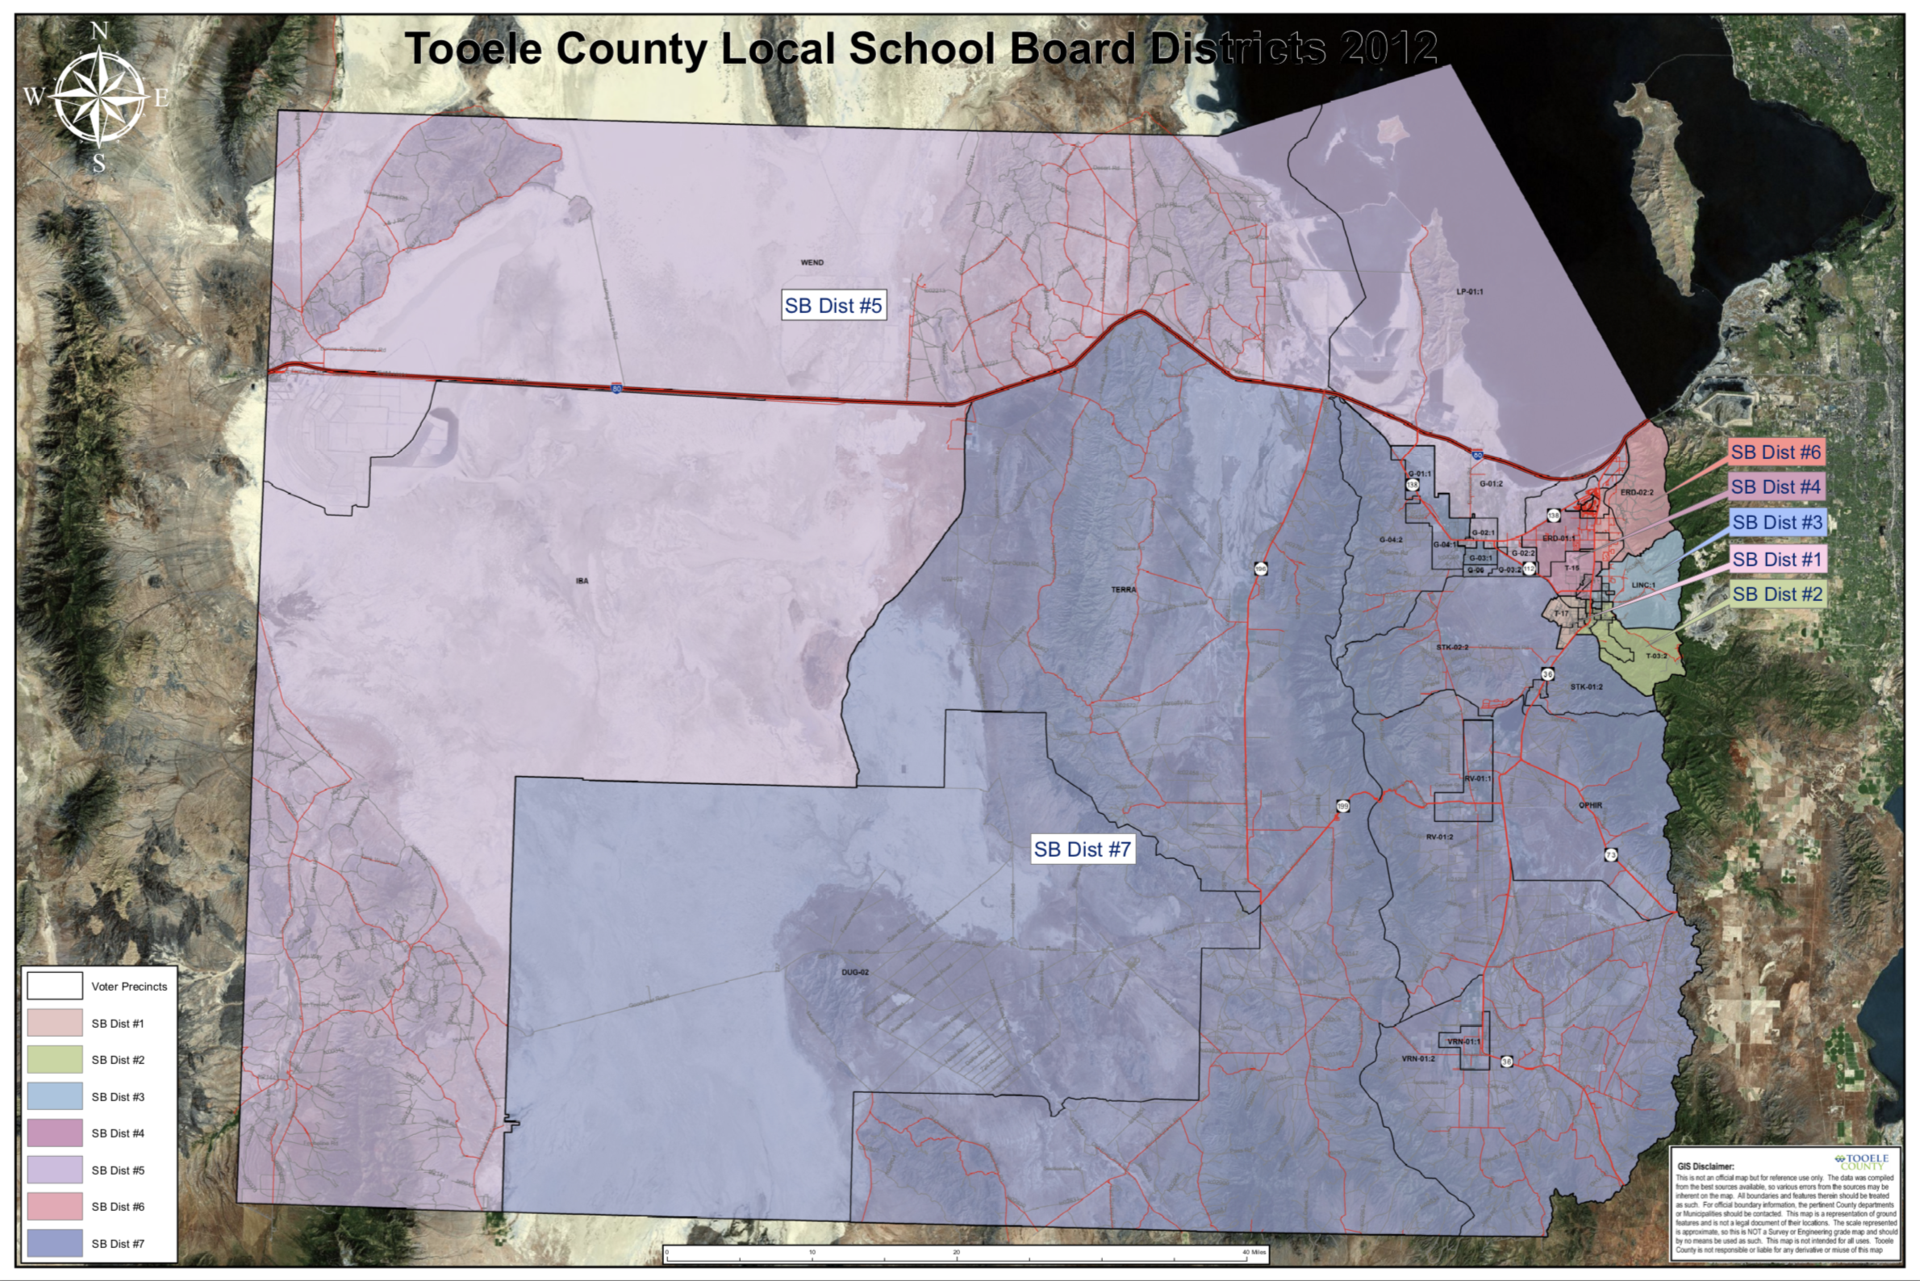 Tooele County Local School Bard Districts